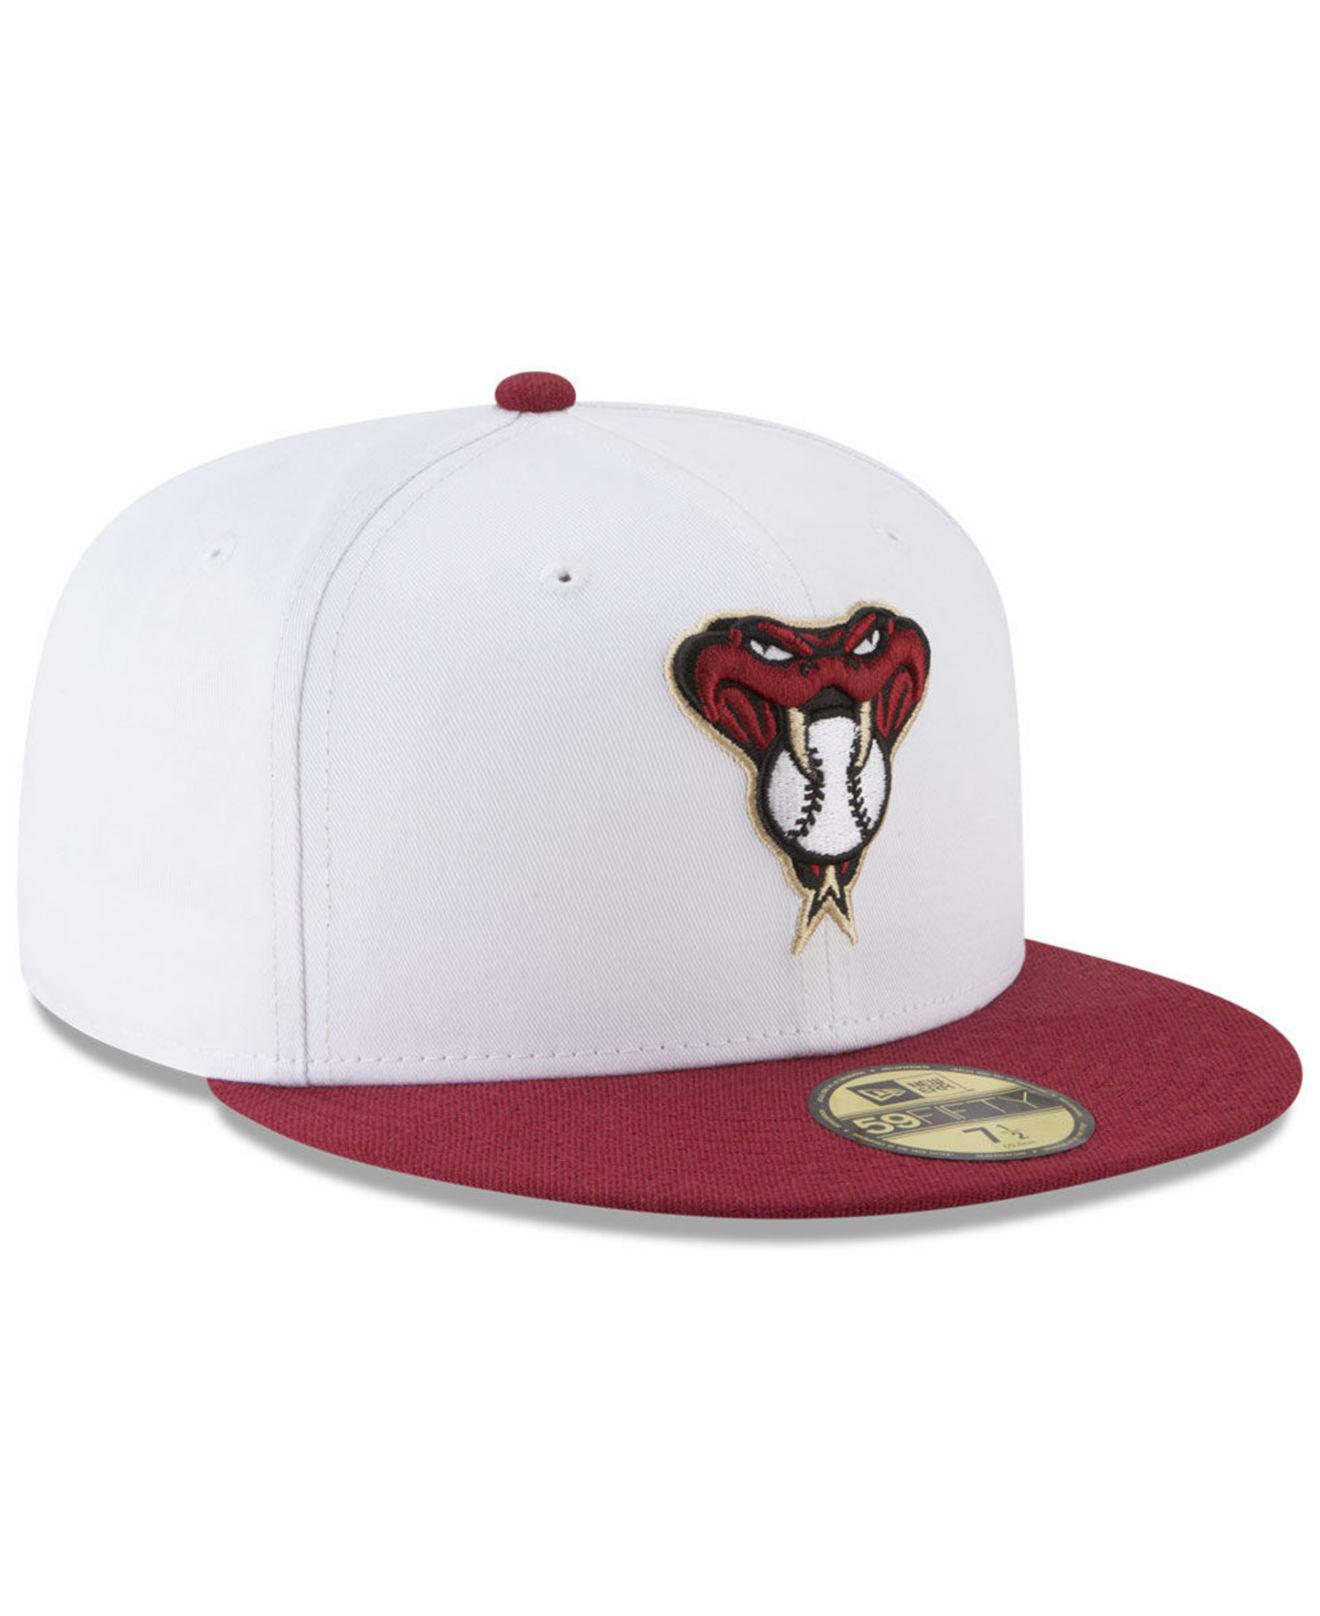 96bcc3c063a ... Arizona Diamondbacks Batting Practice Wool Flip 59fifty Fitted Cap for  Men - Lyst. View fullscreen